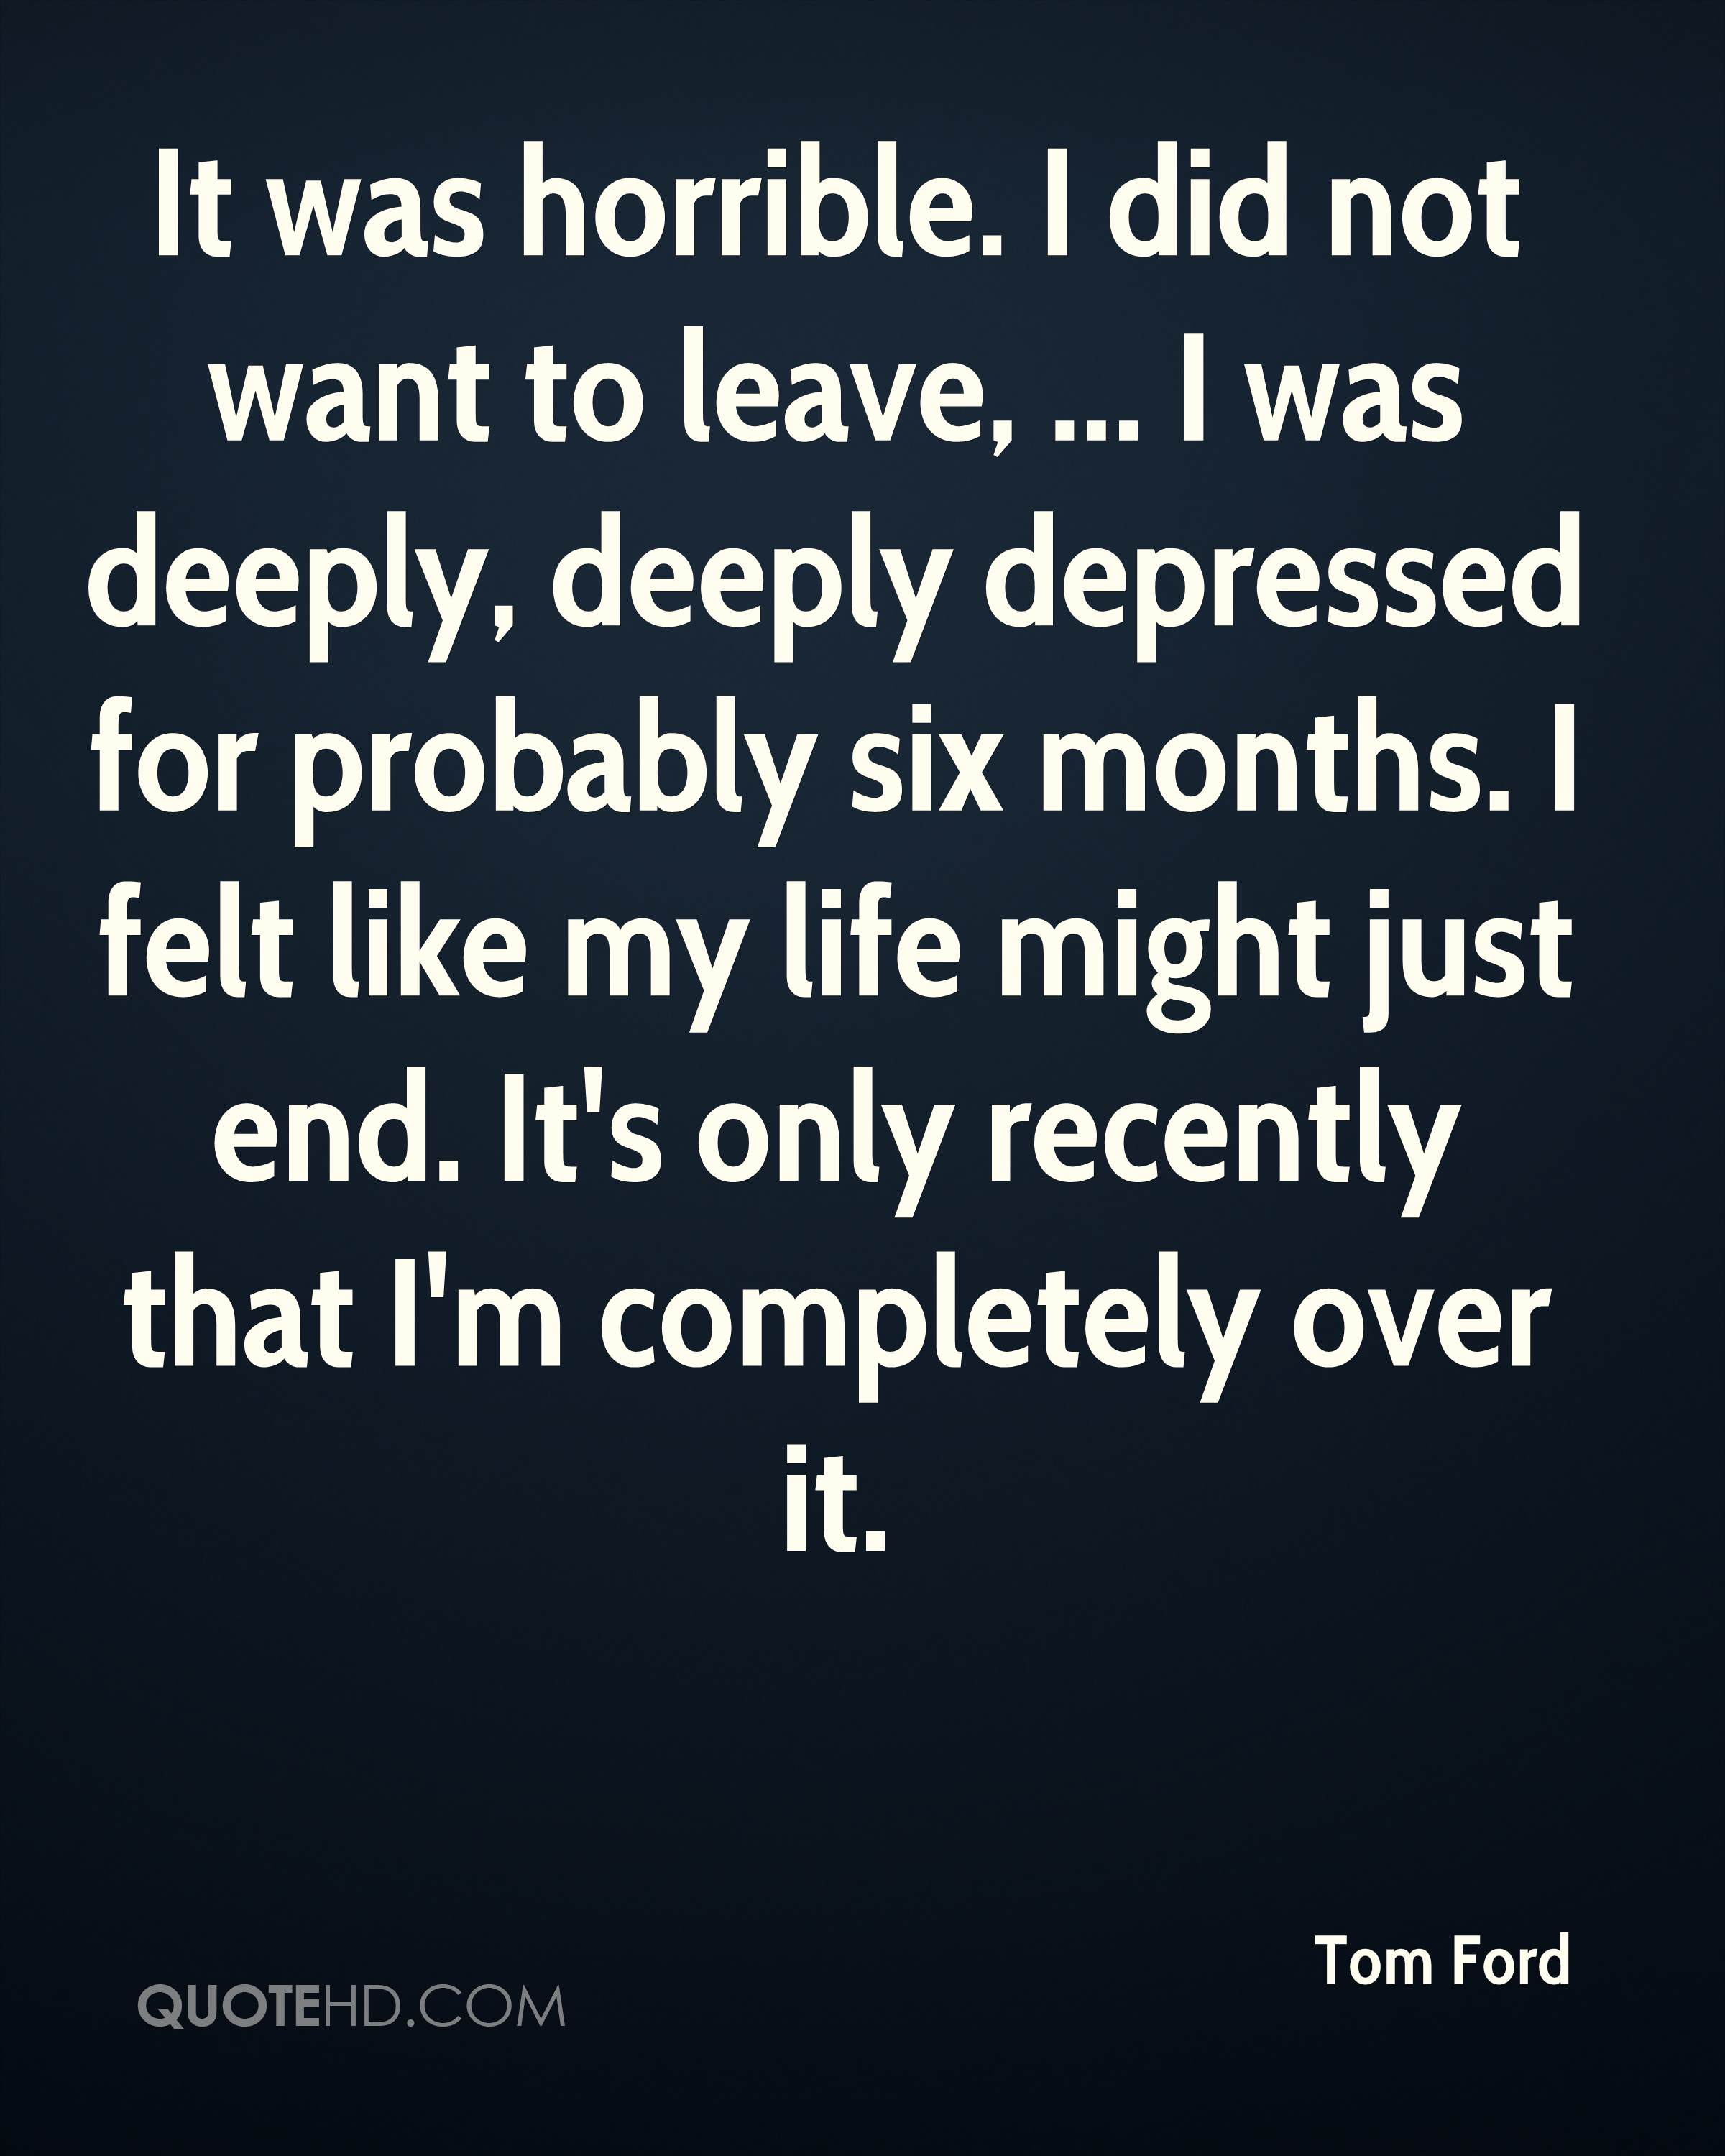 It was horrible. I did not want to leave, ... I was deeply, deeply depressed for probably six months. I felt like my life might just end. It's only recently that I'm completely over it.